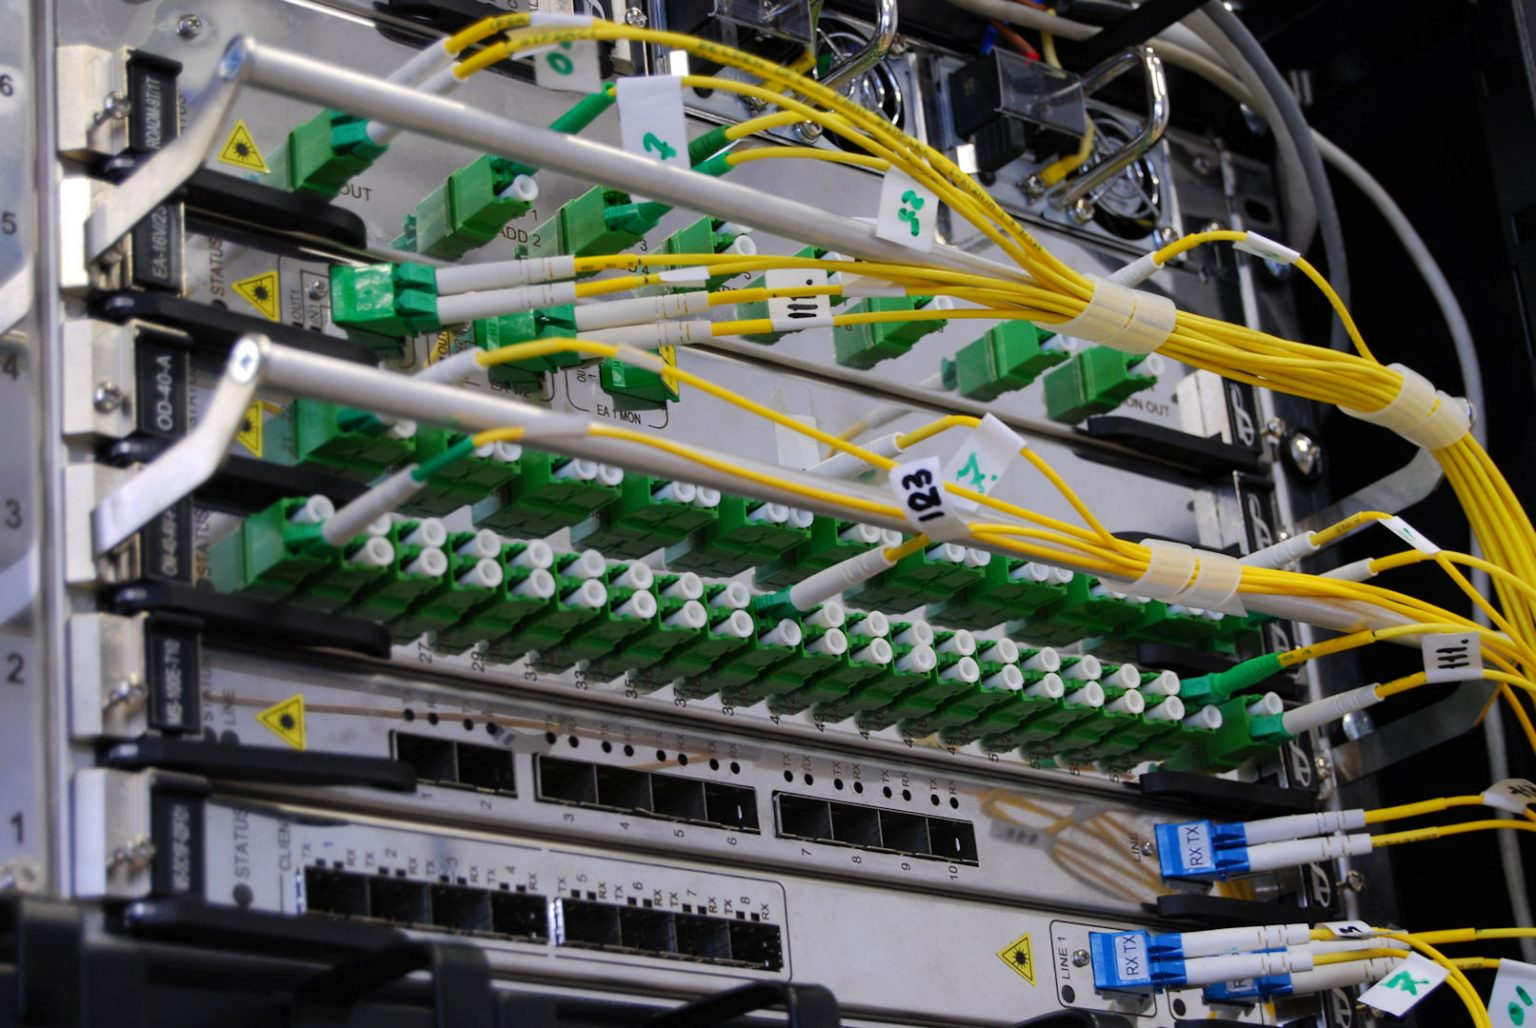 microngroup-fibre-optic-patch-panel-and-network-gigabit-switch